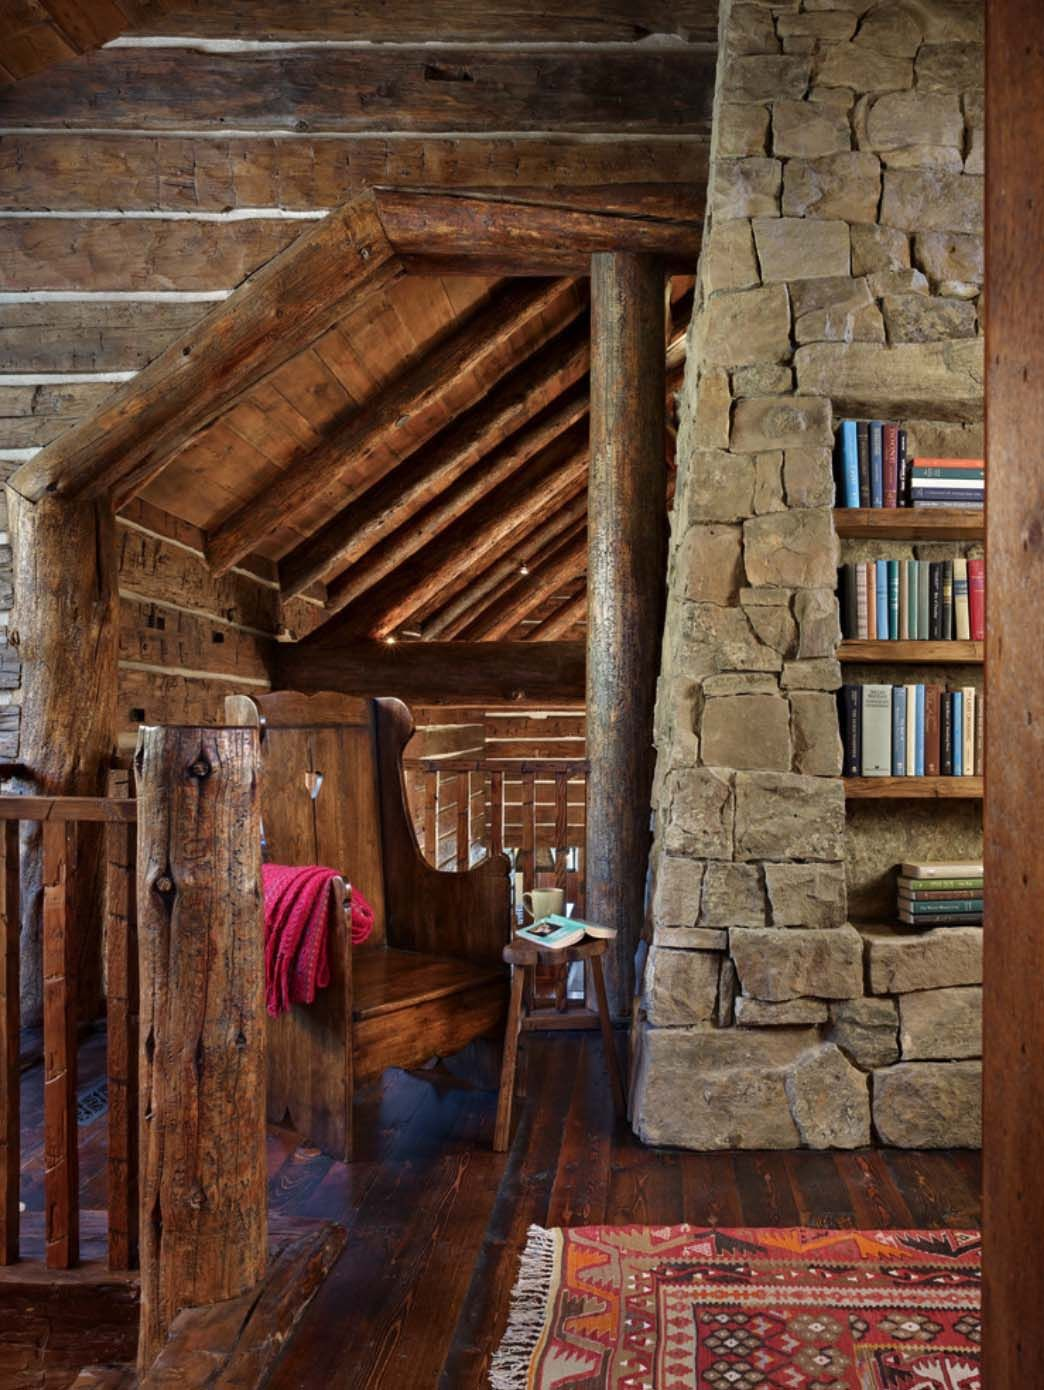 Stunning Rustic Retreat With Majestic Views Over Montana Countryside Moonlight Basin Rustic Log Homes